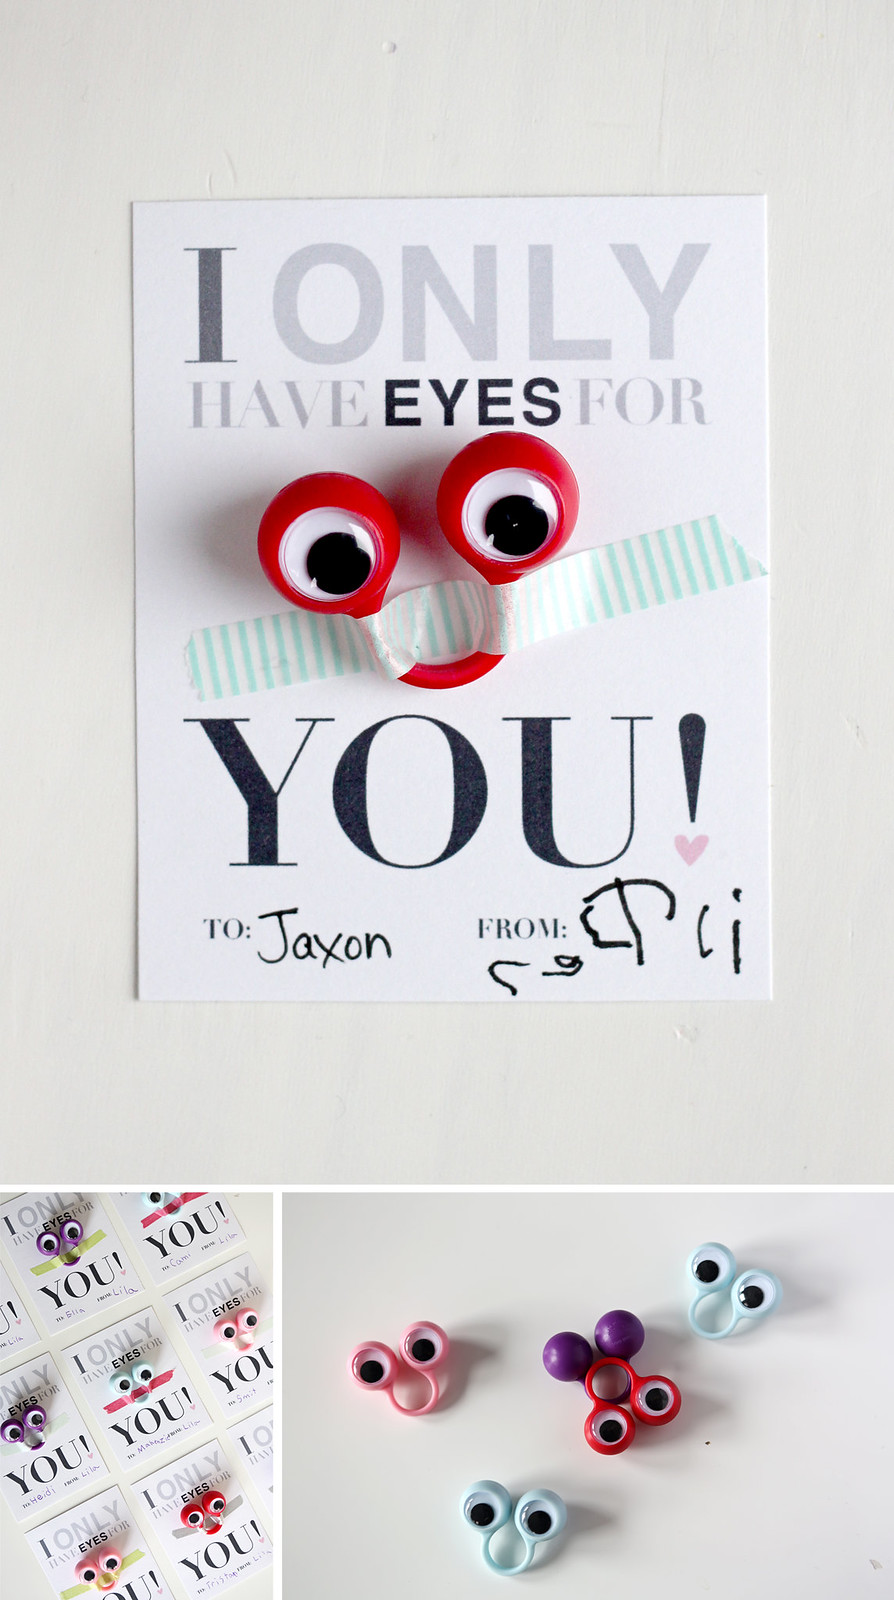 i only have eyes for you - free printable valentine